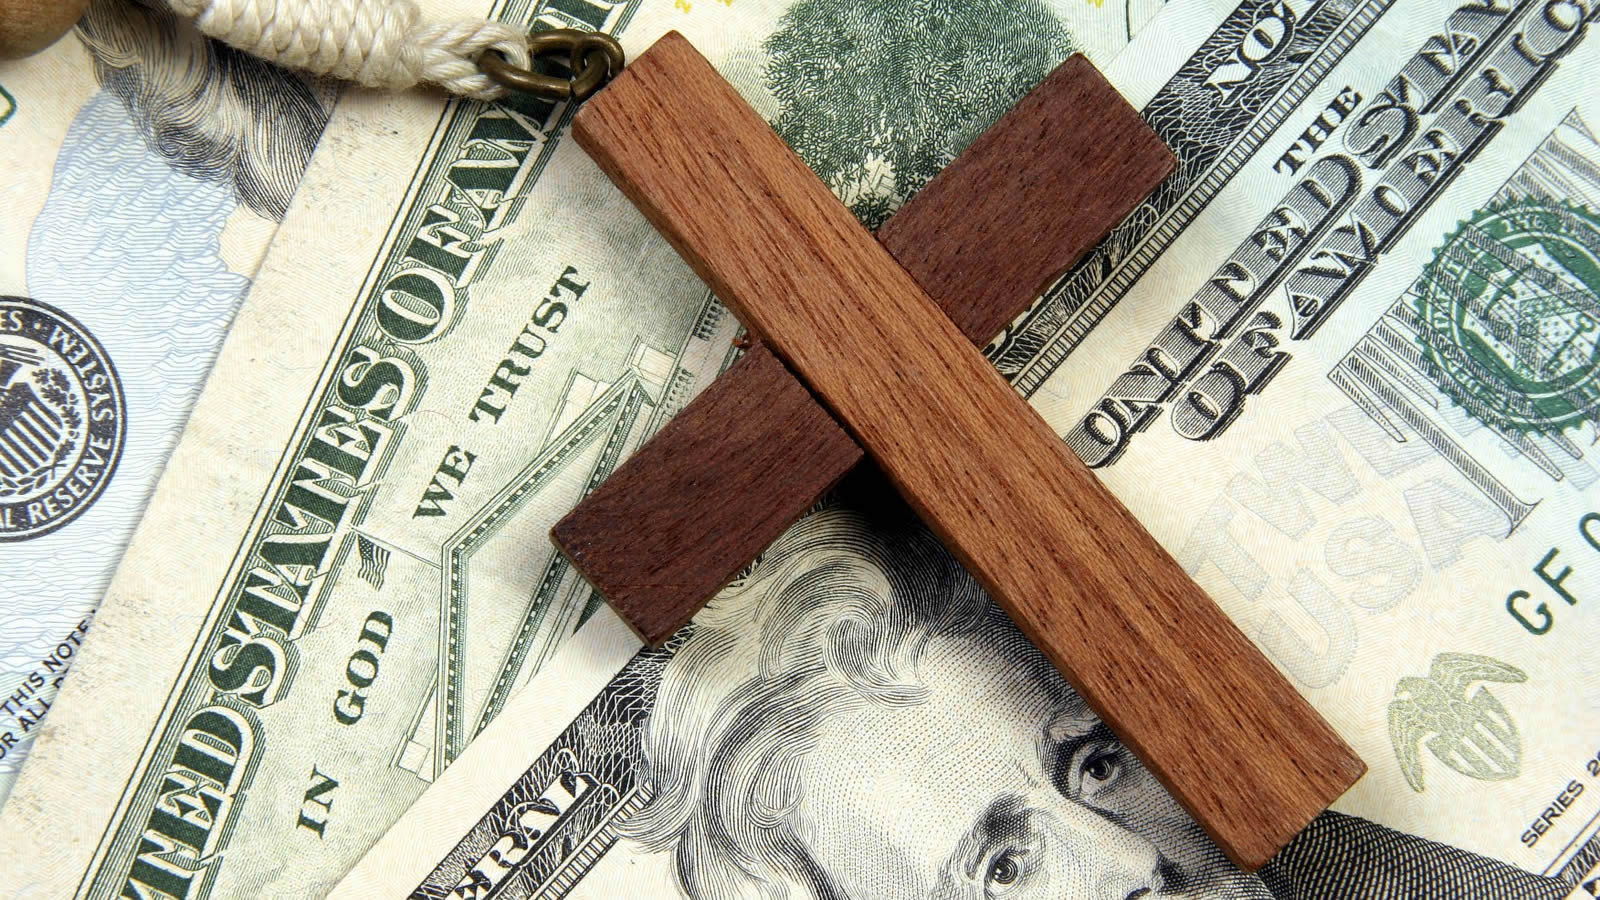 Wooden Cross Over United States Money